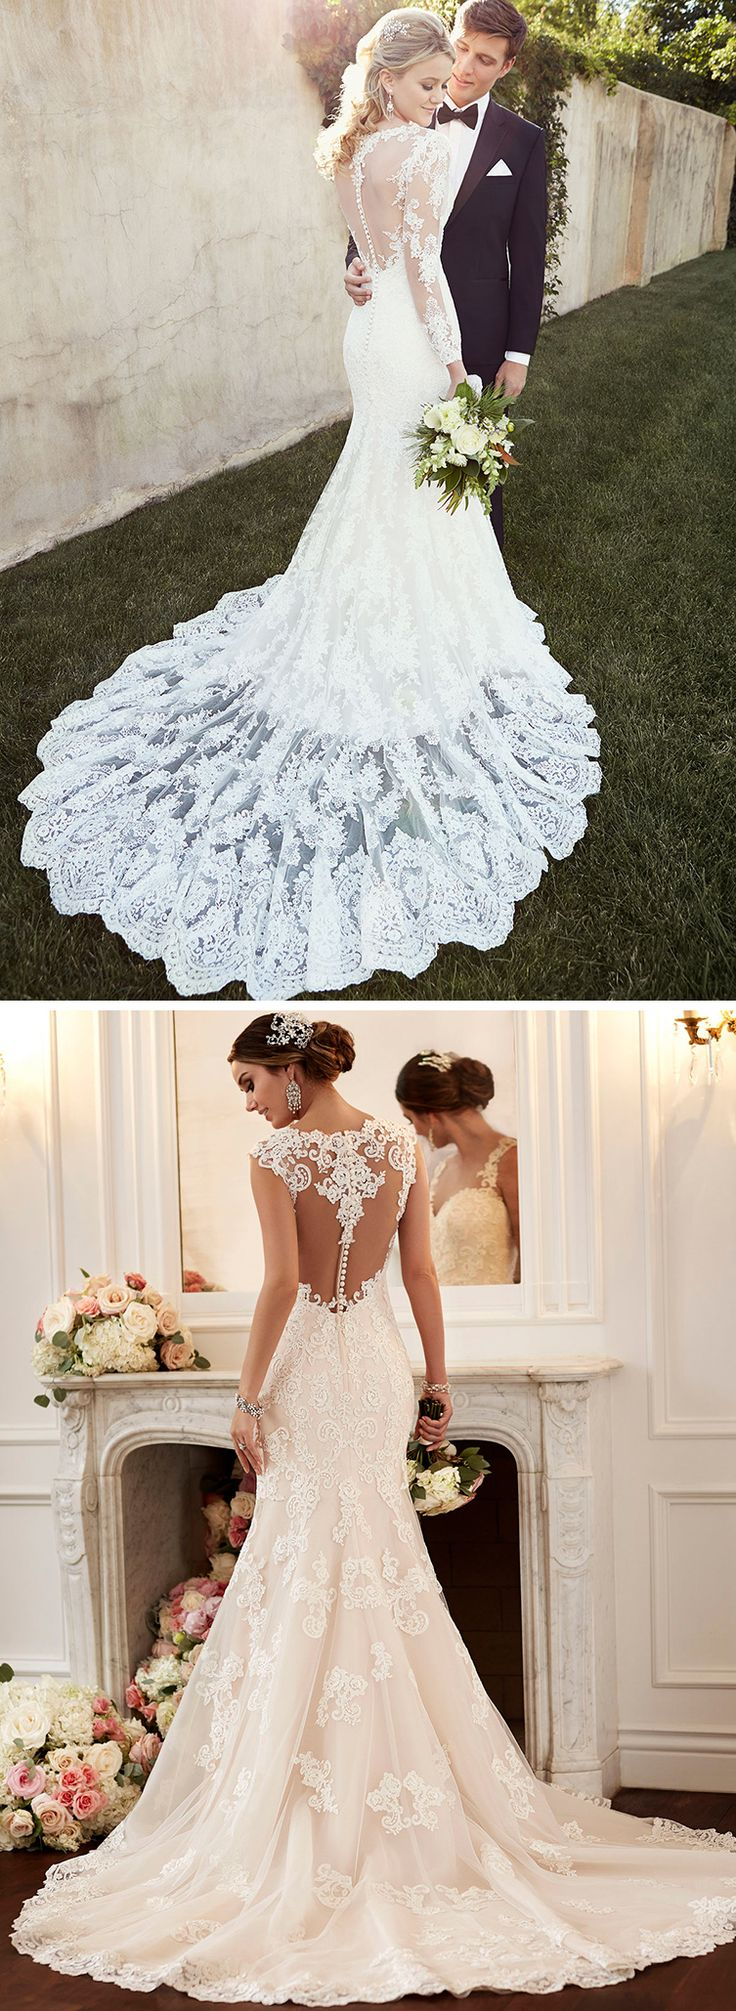 Best 25 2nd Wedding Dresses Ideas On Pinterest Pictures Of Vintage Inspired  Wedding Dresses From Old